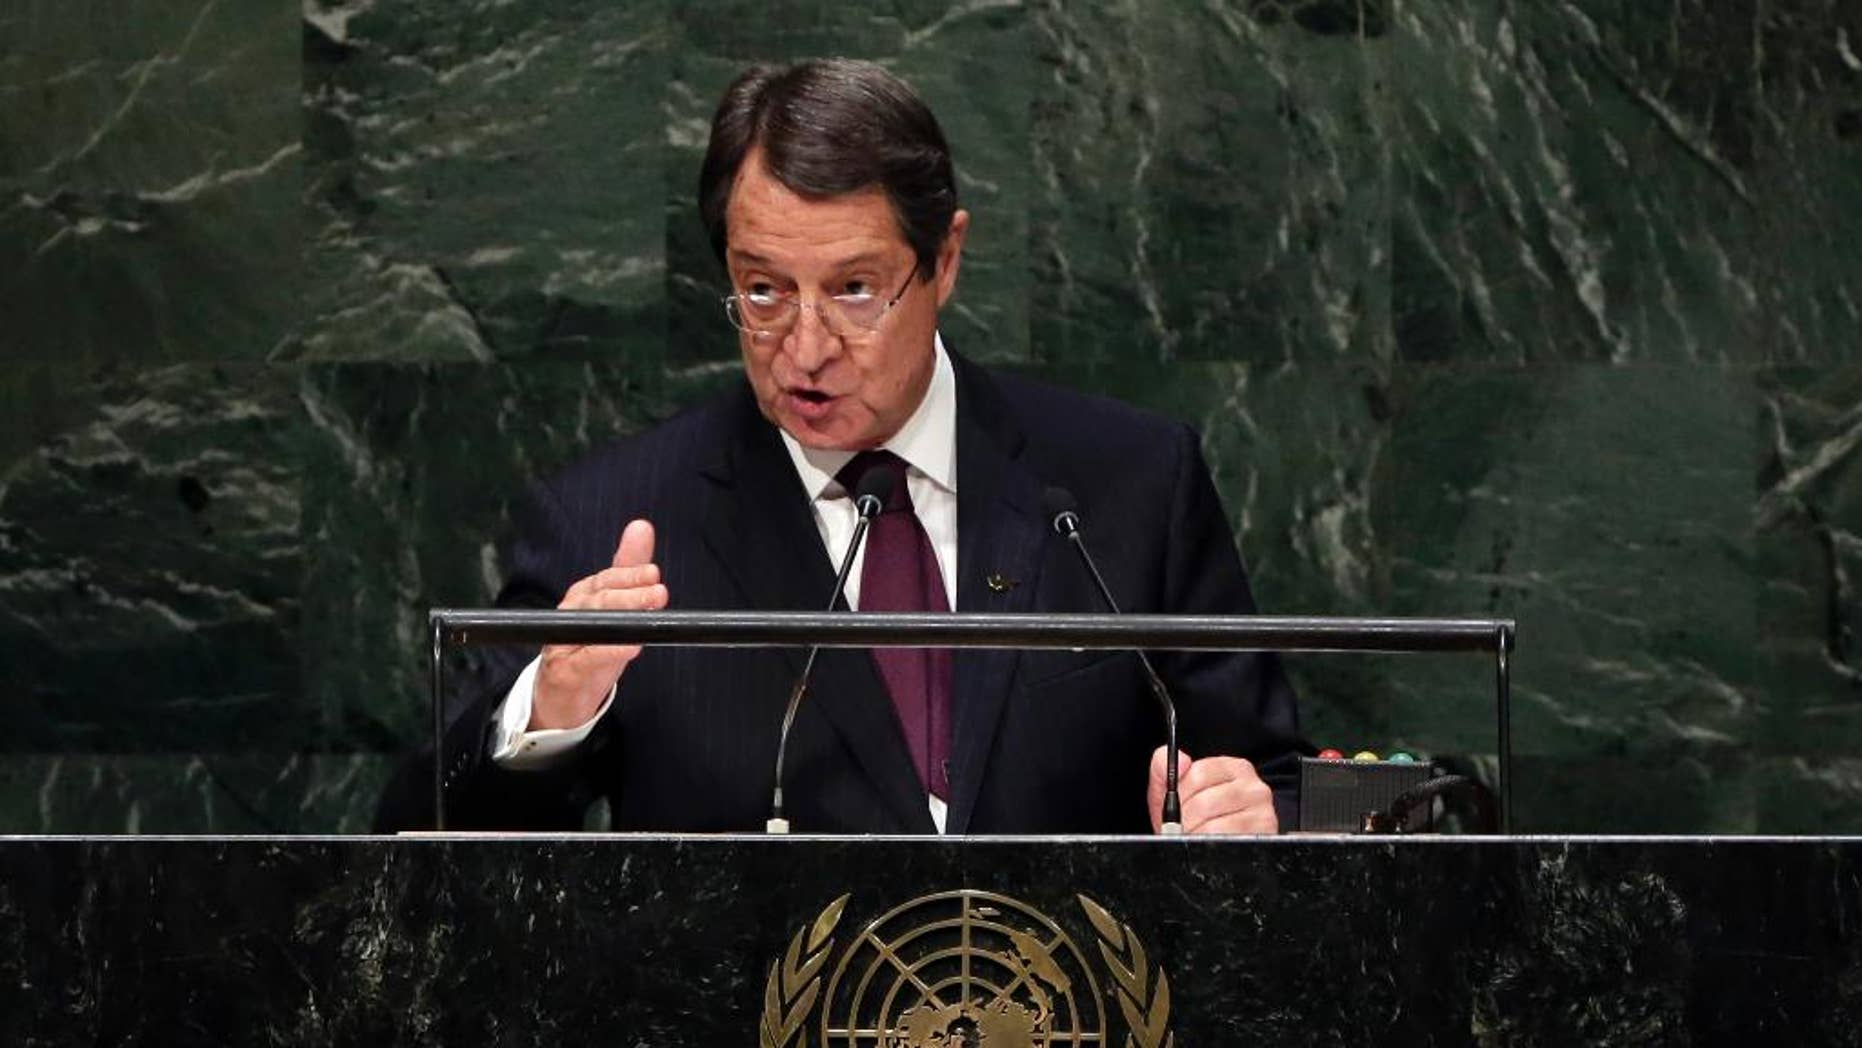 FILE - A Friday, Sept. 26, 2014 photo from files showing President Nicos Anastasiades, of Cyprus, addressing the 69th session of the United Nations General Assembly, at U.N. headquarters. The president of Cyprus was admitted to a hospital in Brussels after a prolonged nosebleed that doctors said was caused by hypertension, an official said Thursday, Oct. 23, 2014. Cyprus government spokesman Nicos Christodoulides said President Nicos Anastasiades received treatment and will rest for two days on the advice of doctors to avoid a recurrence of the nosebleed. (AP Photo/Richard Drew)